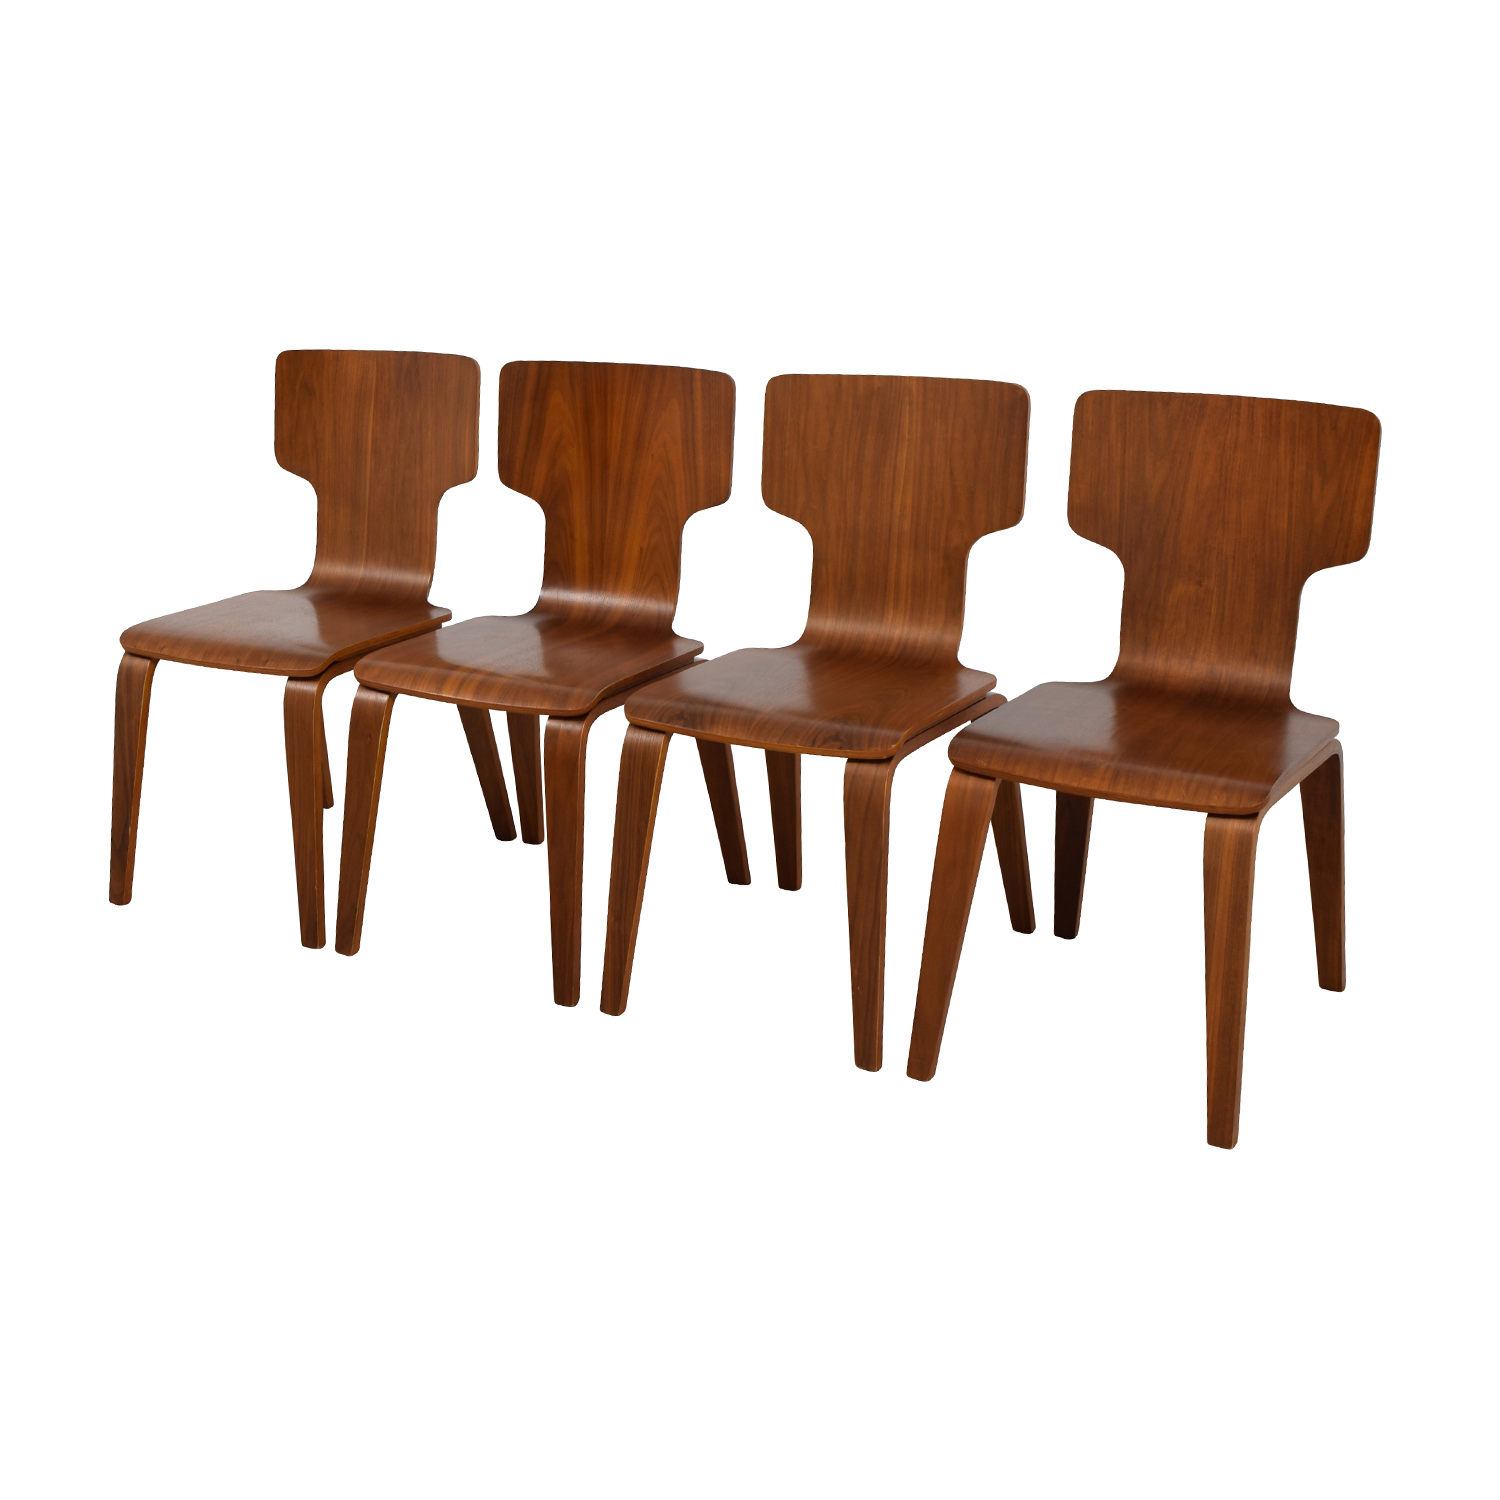 59% OFF West Elm West Elm Dining Table Chairs Chairs